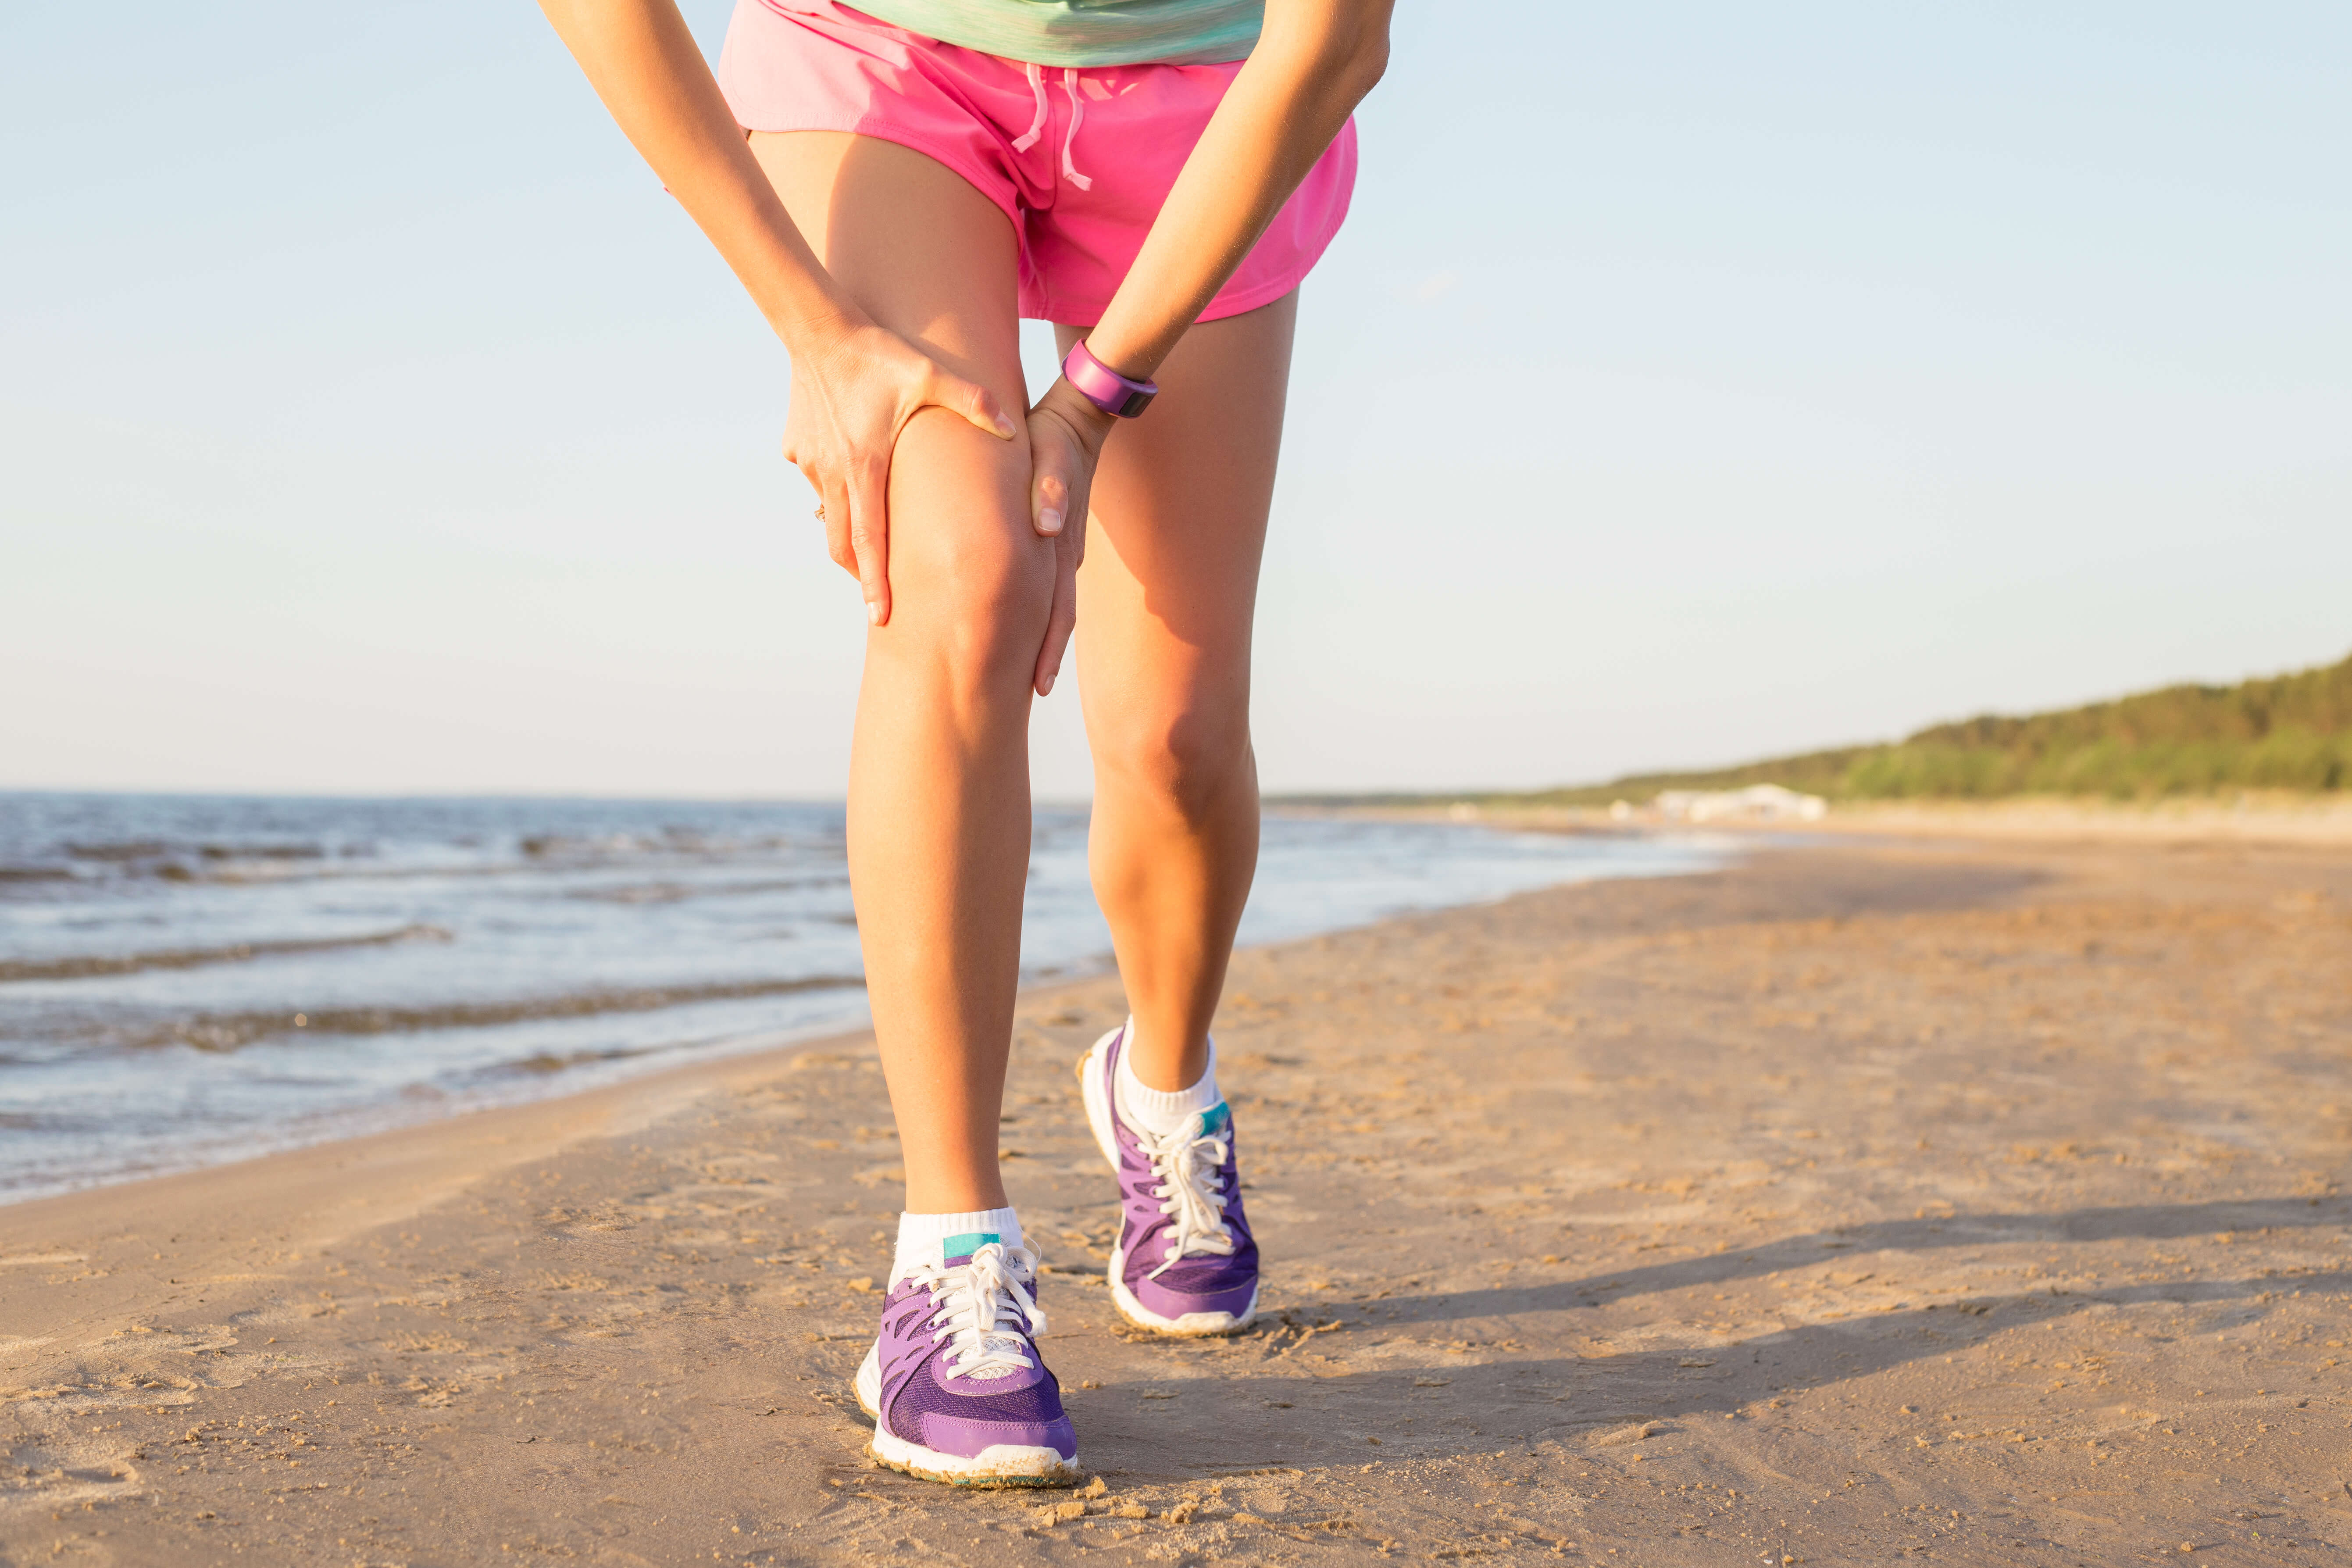 Neuromuscular Re-education Benefits for ACL Injuries